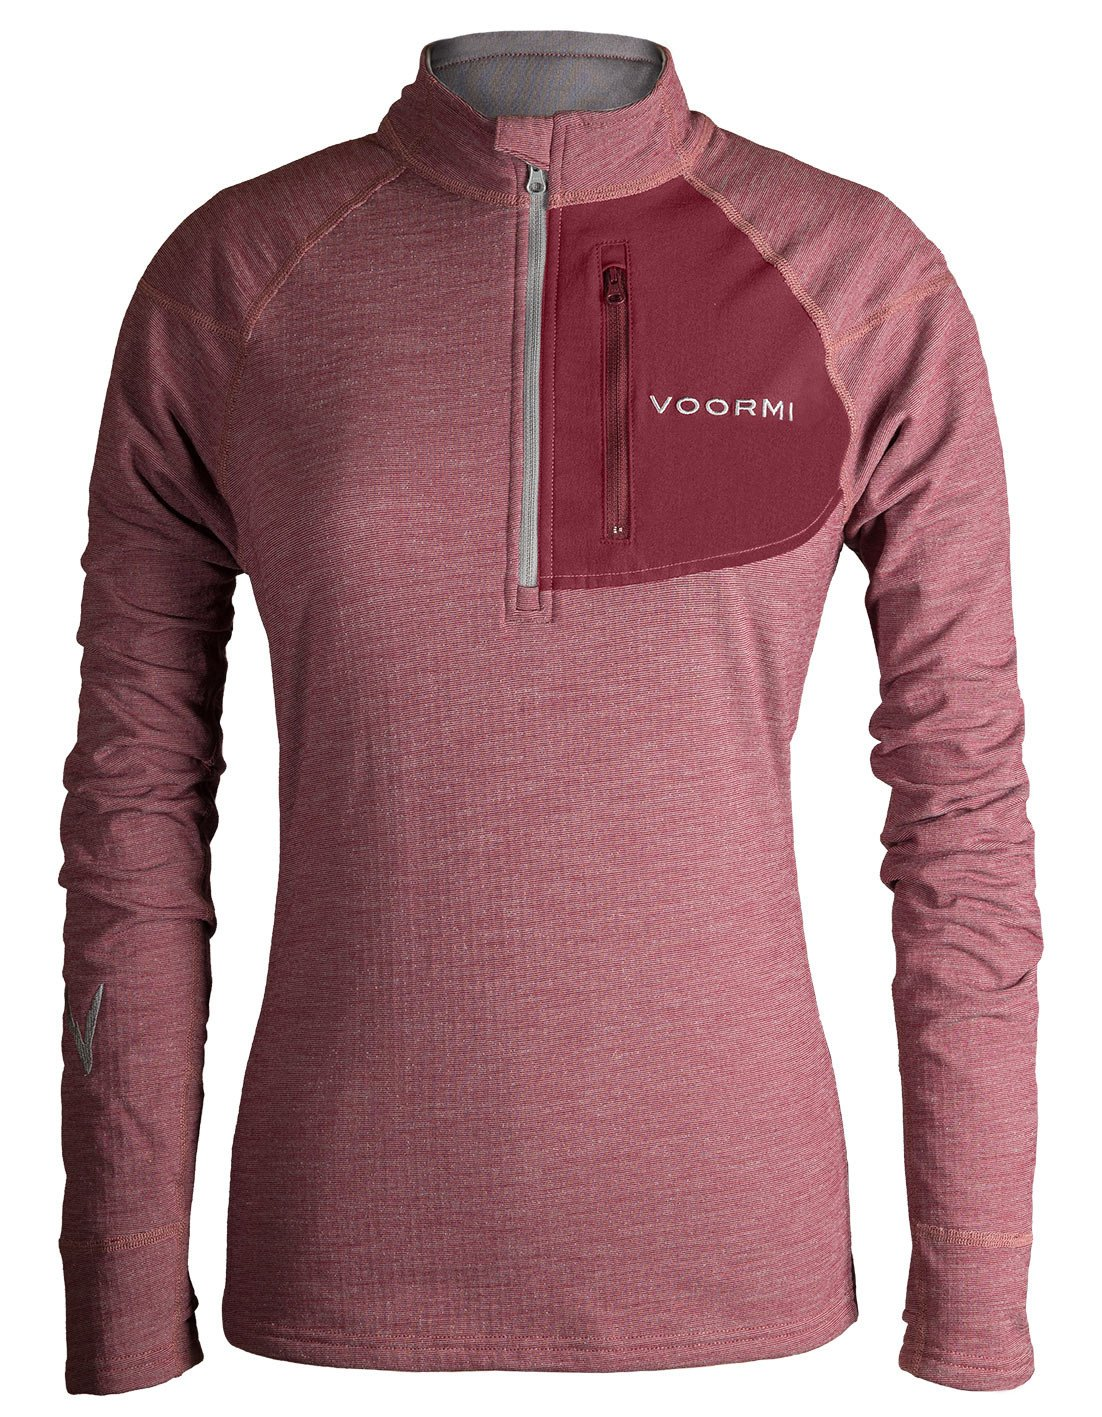 Voormi Womens Access NXT Pullover